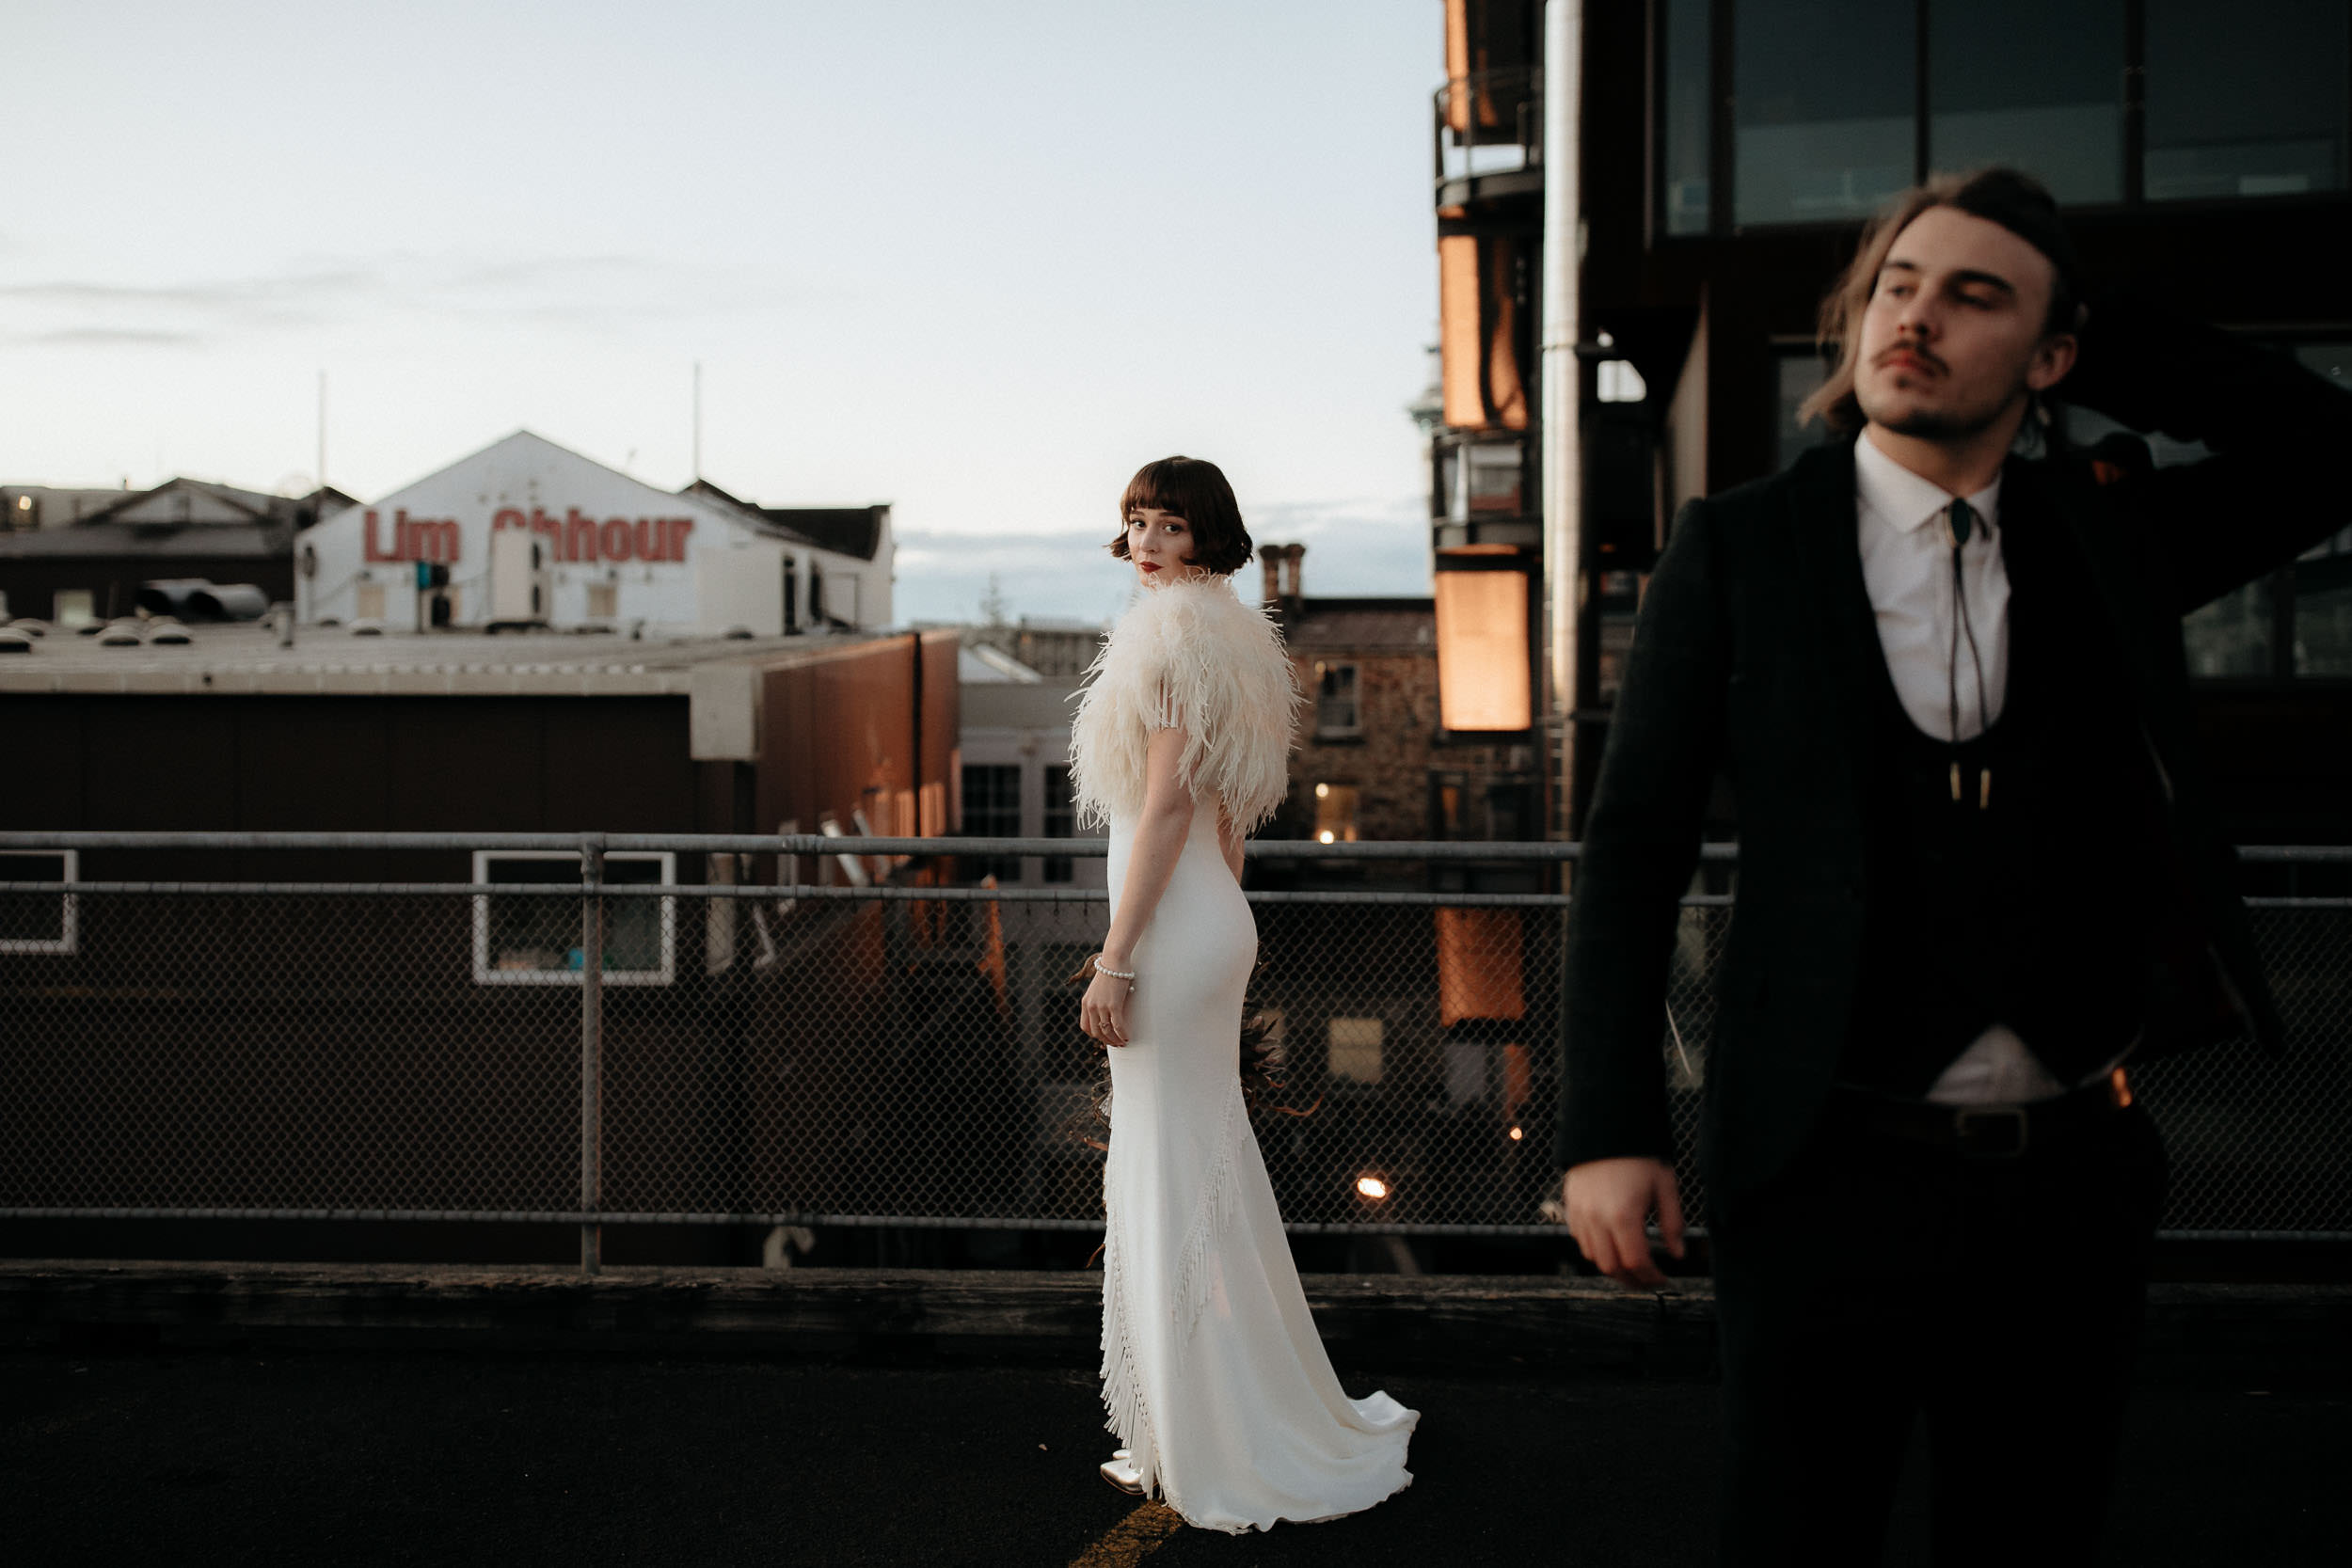 new-zealand-wedding-photographer-1.jpg